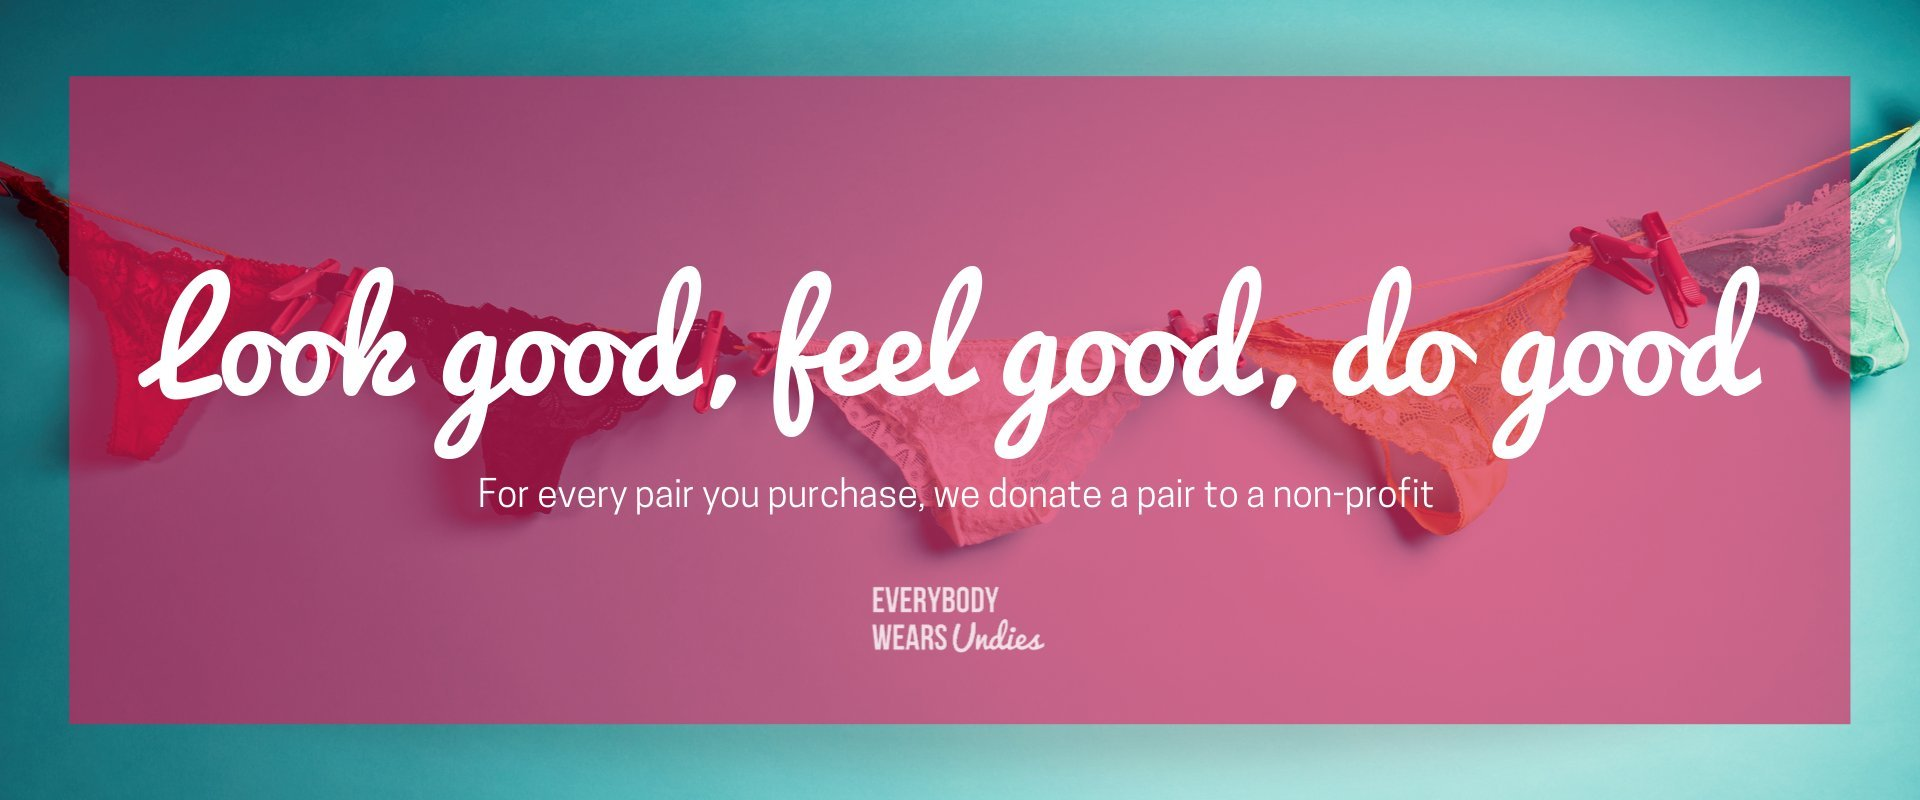 Look good, feel good, do good. For every pair you purchase, we donate a pair to a non-profit.